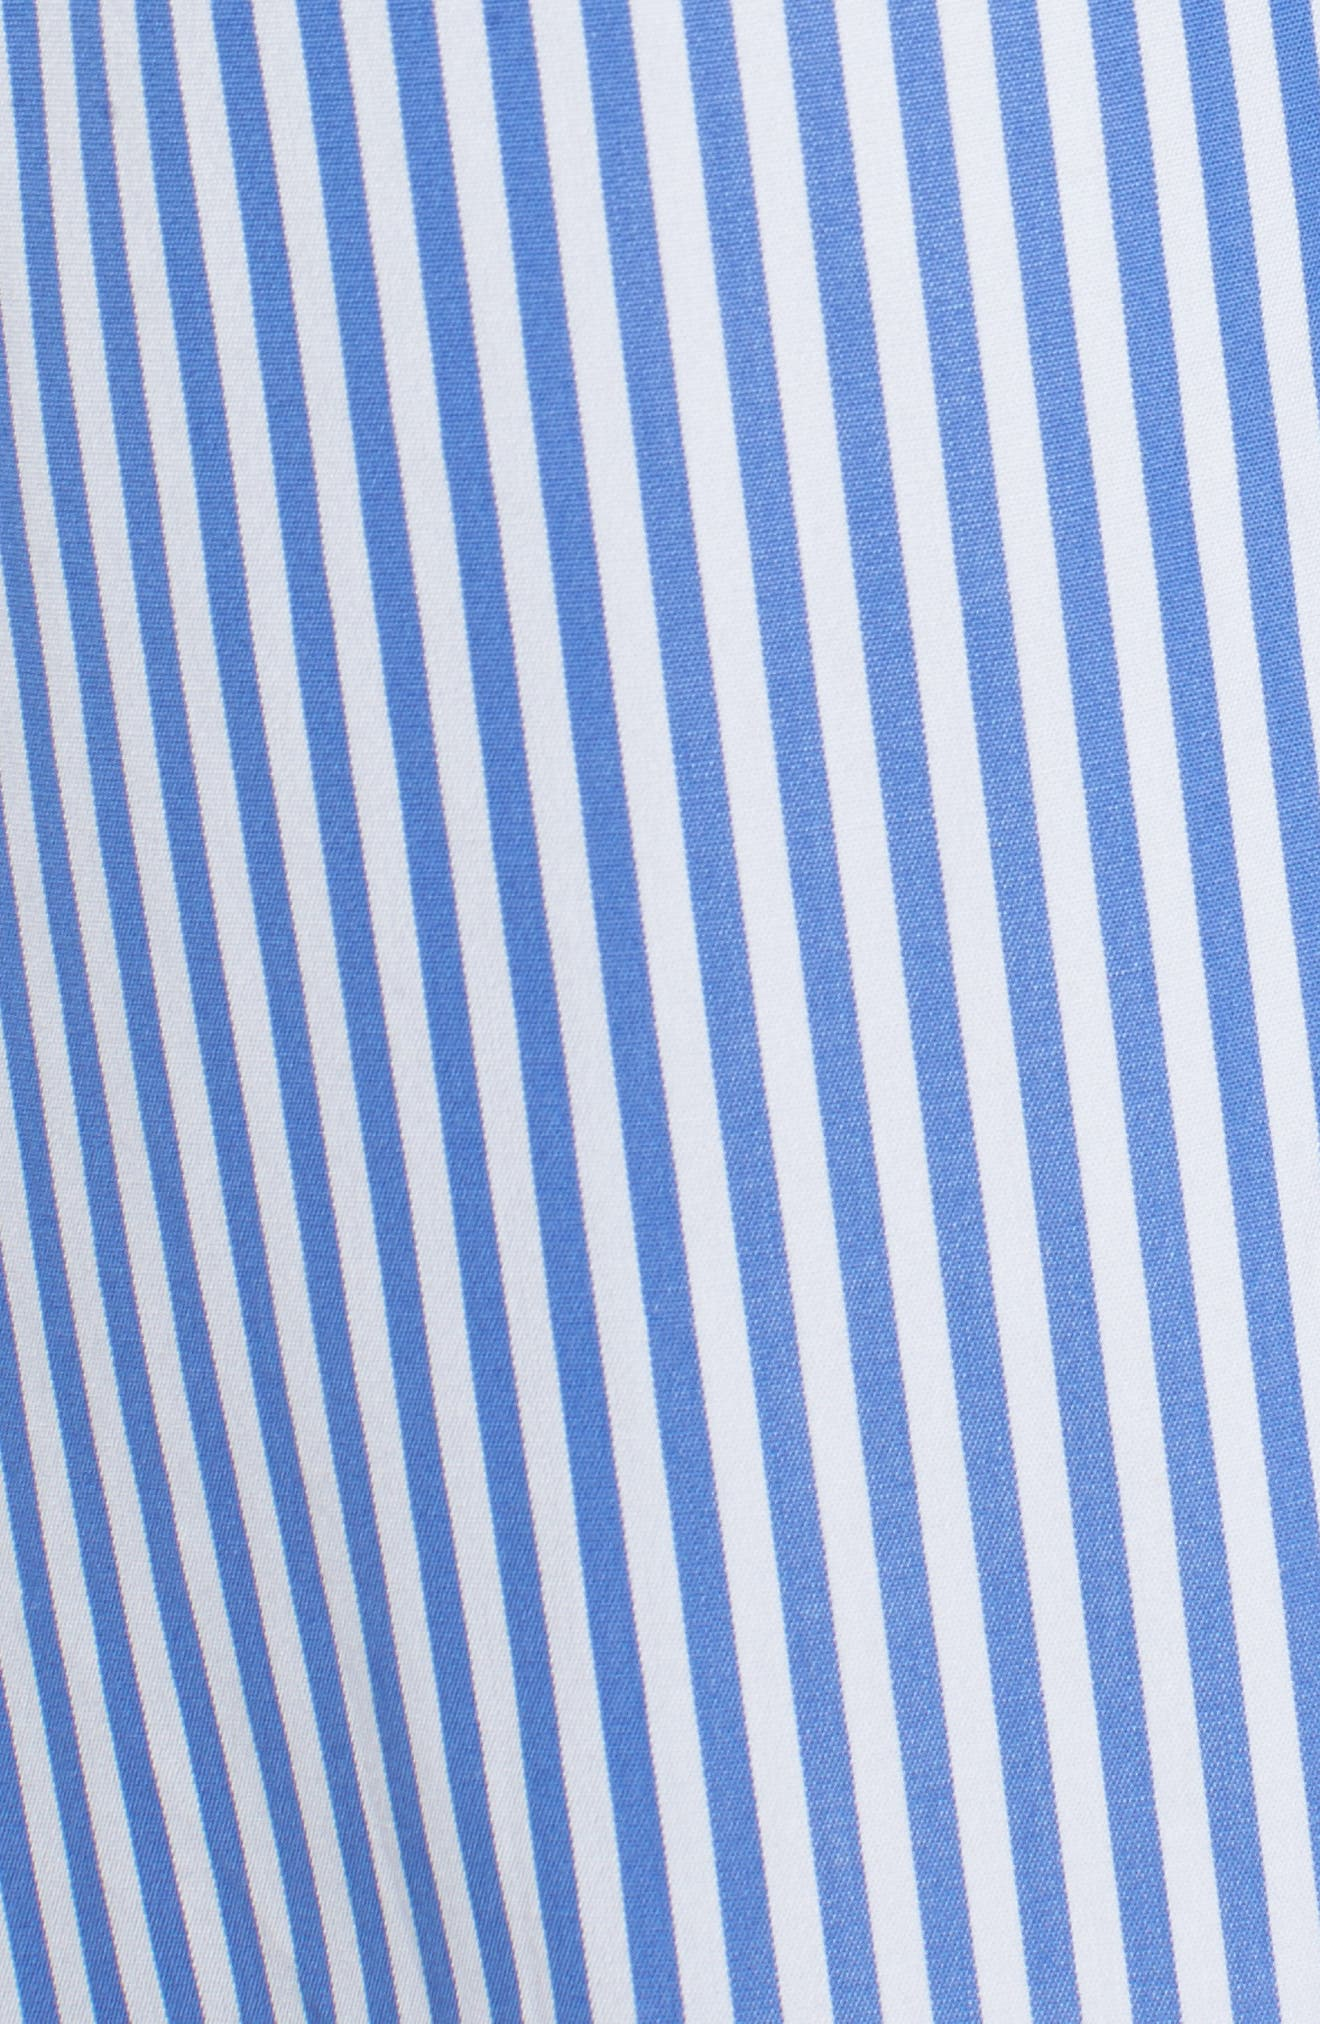 Lace-Up Stripe Shirt,                             Alternate thumbnail 6, color,                             Blue/ White Stripe